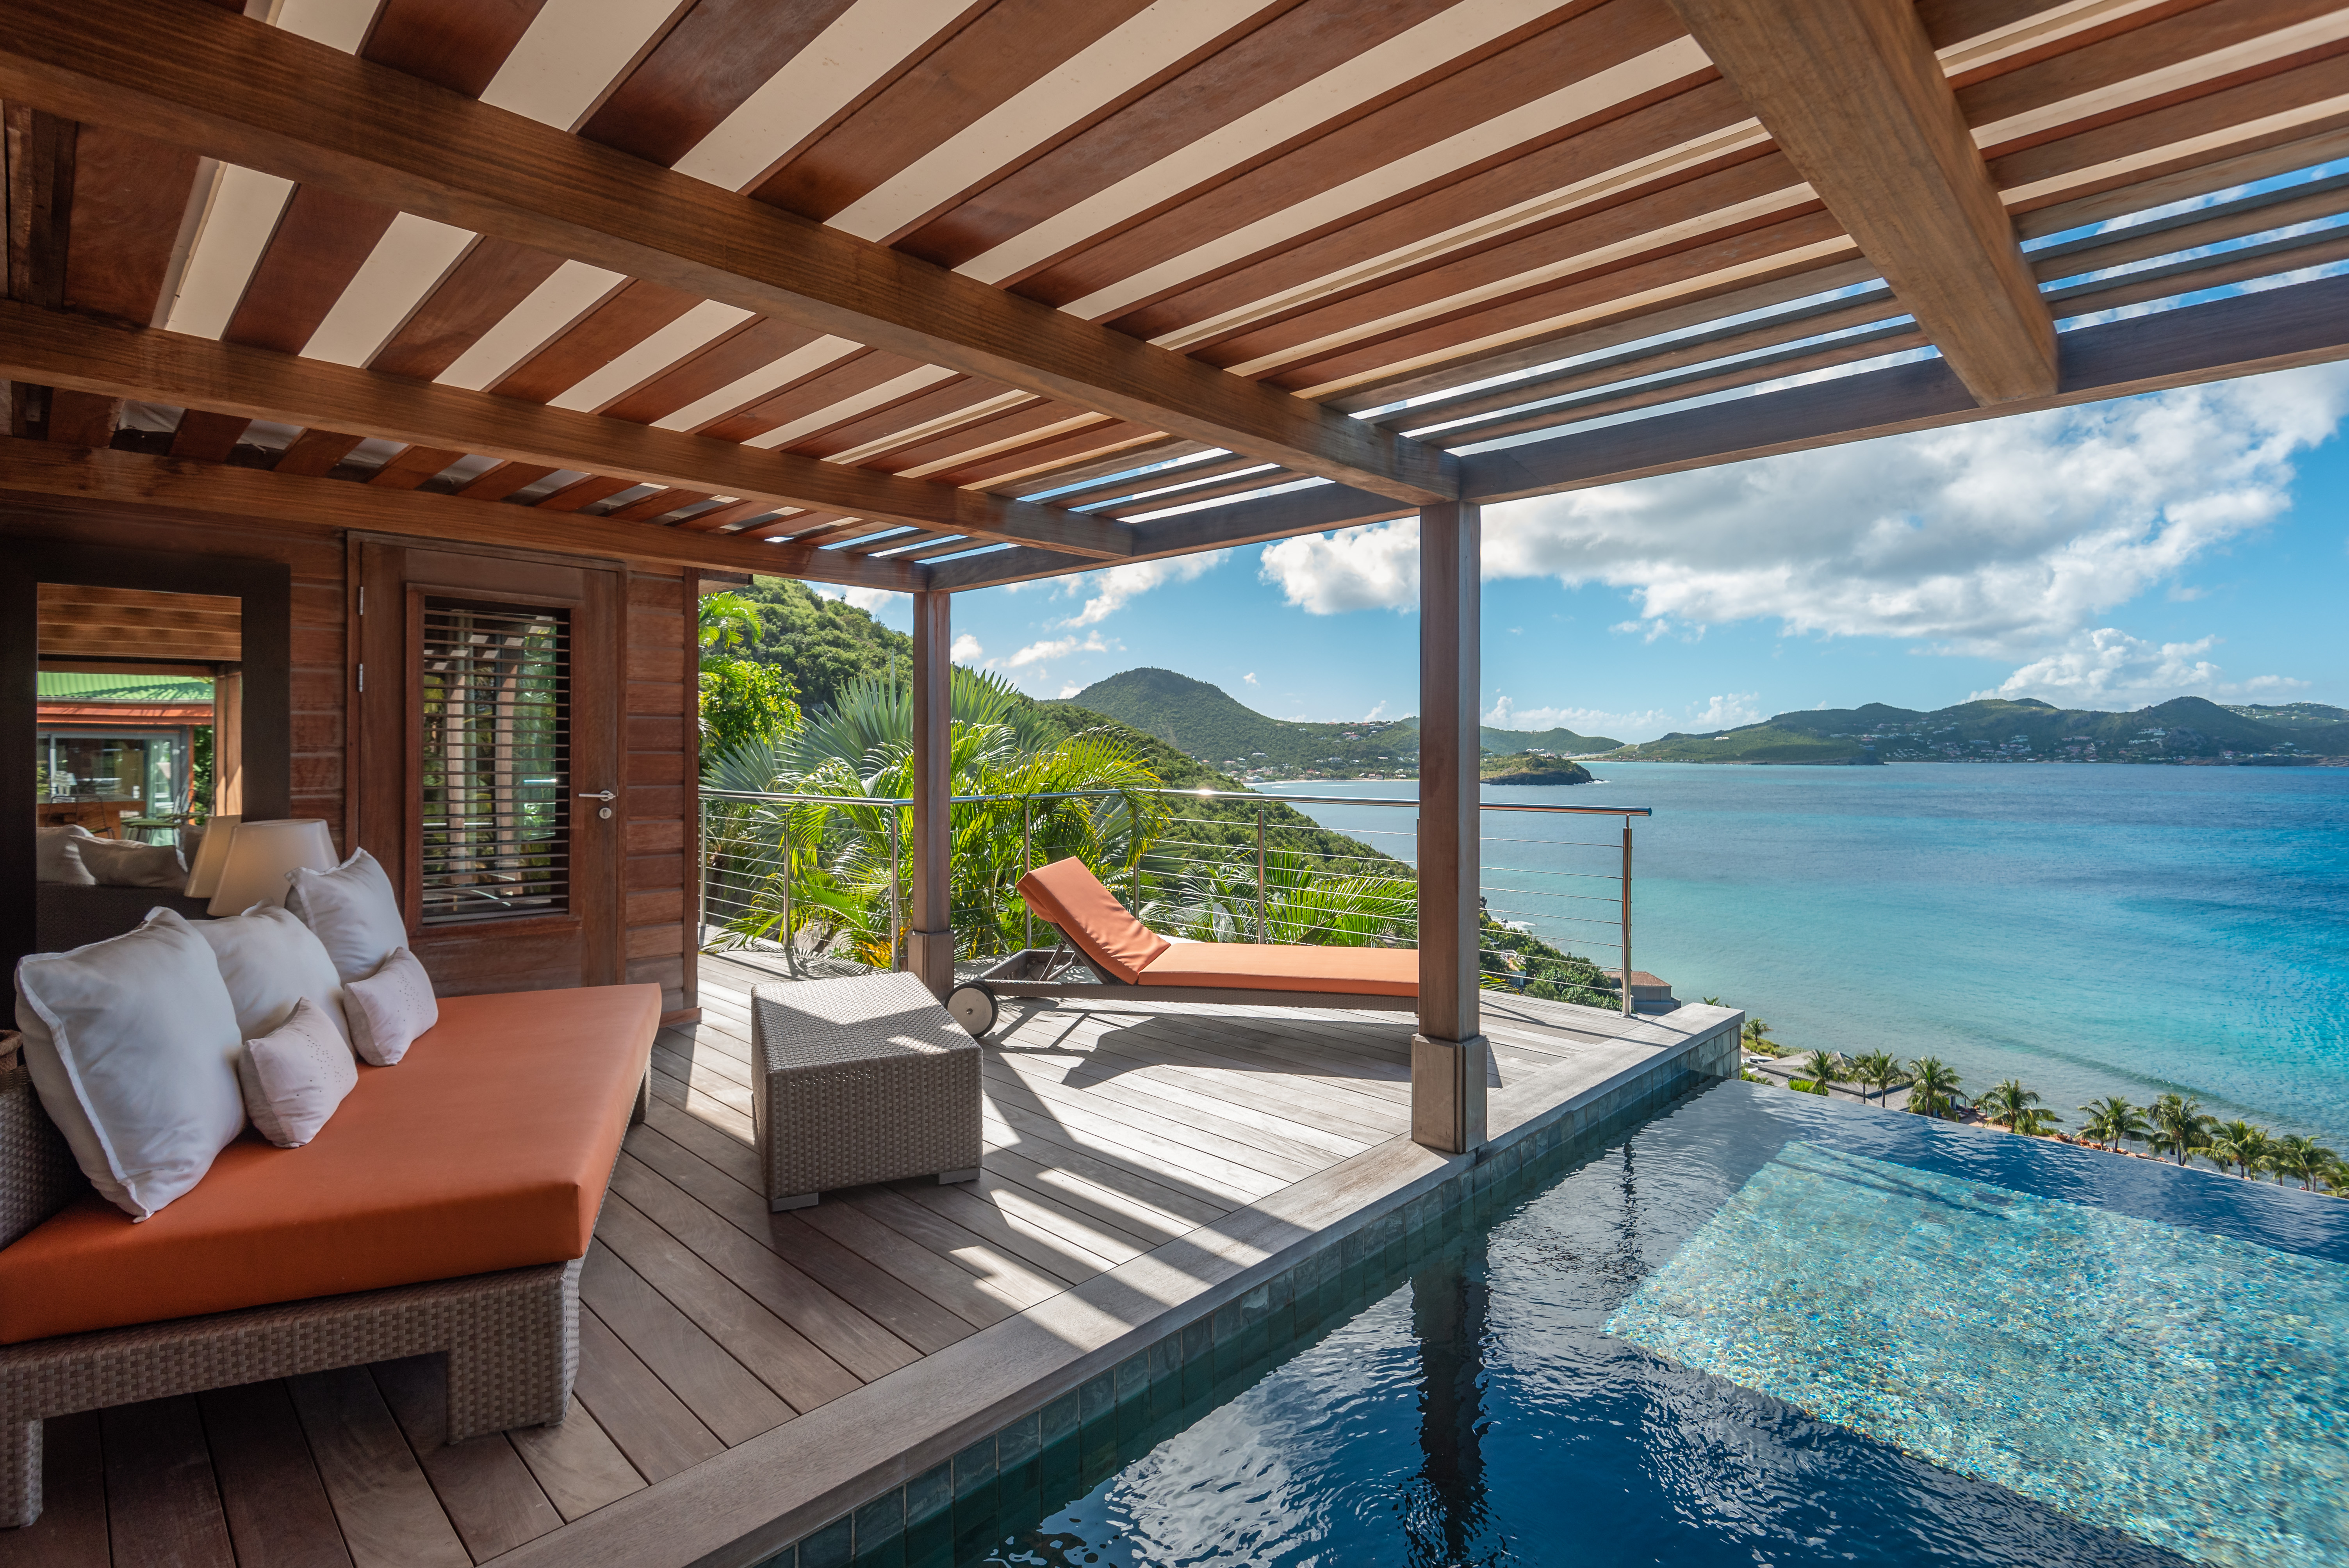 WIMCO Villa WV BAY, St. Barths, Pointe Milou, 2 bedrooms, 2 bathrooms, pool, wifi